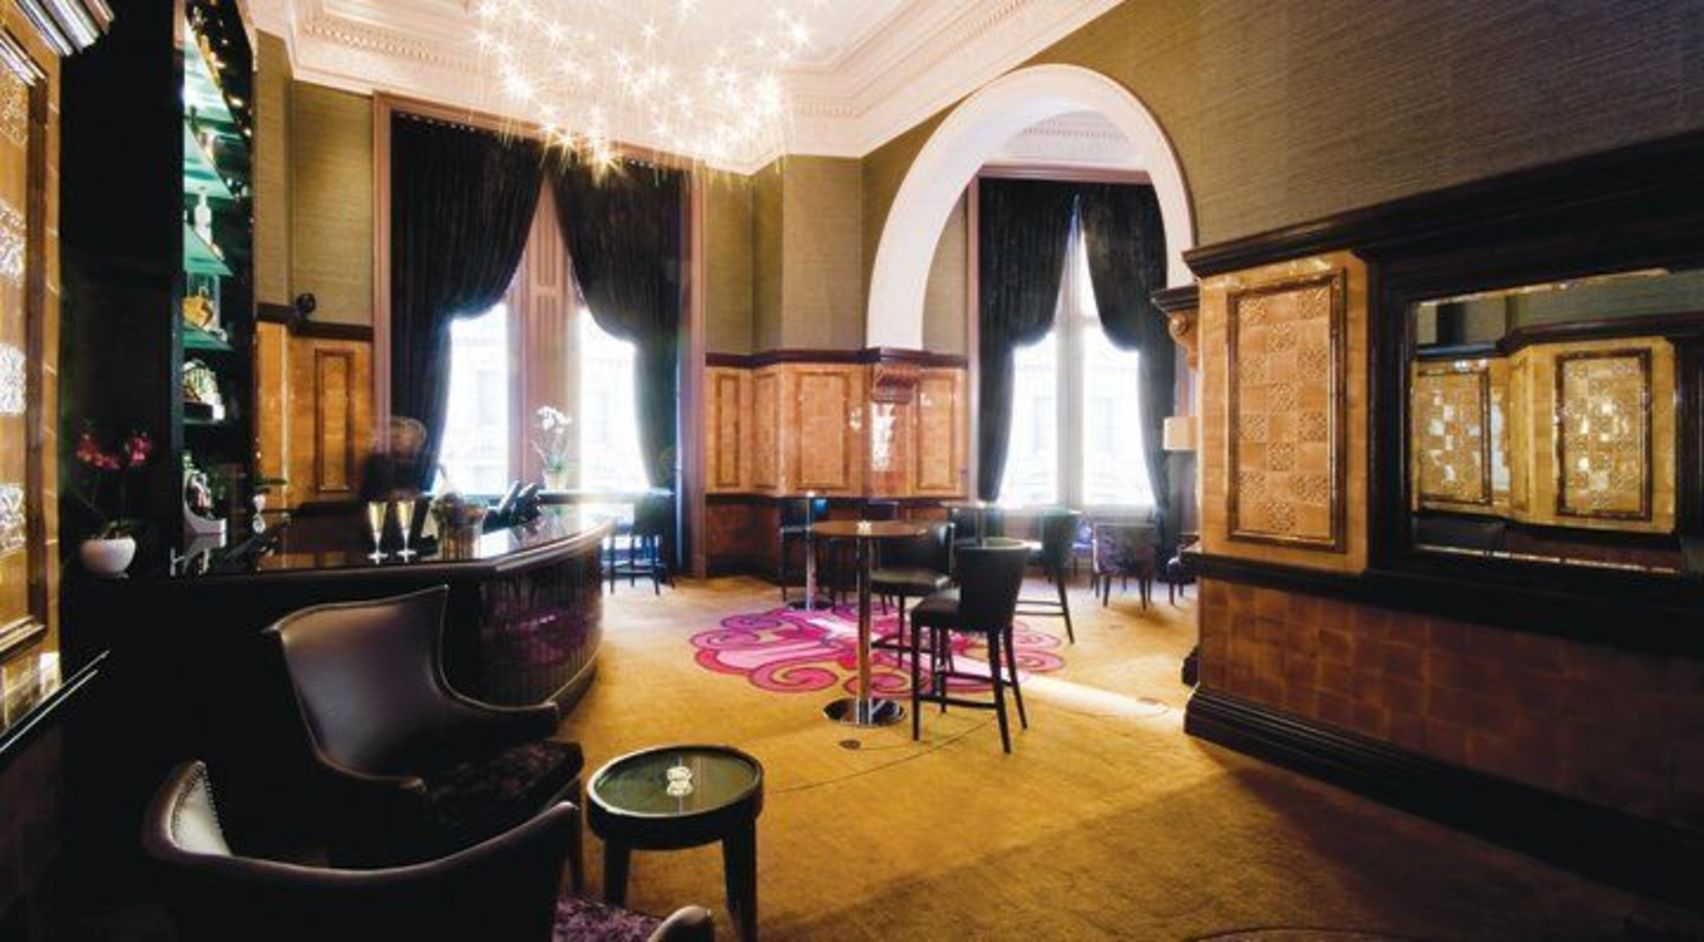 Churchill's Bar Event Room, The Royal Horseguards